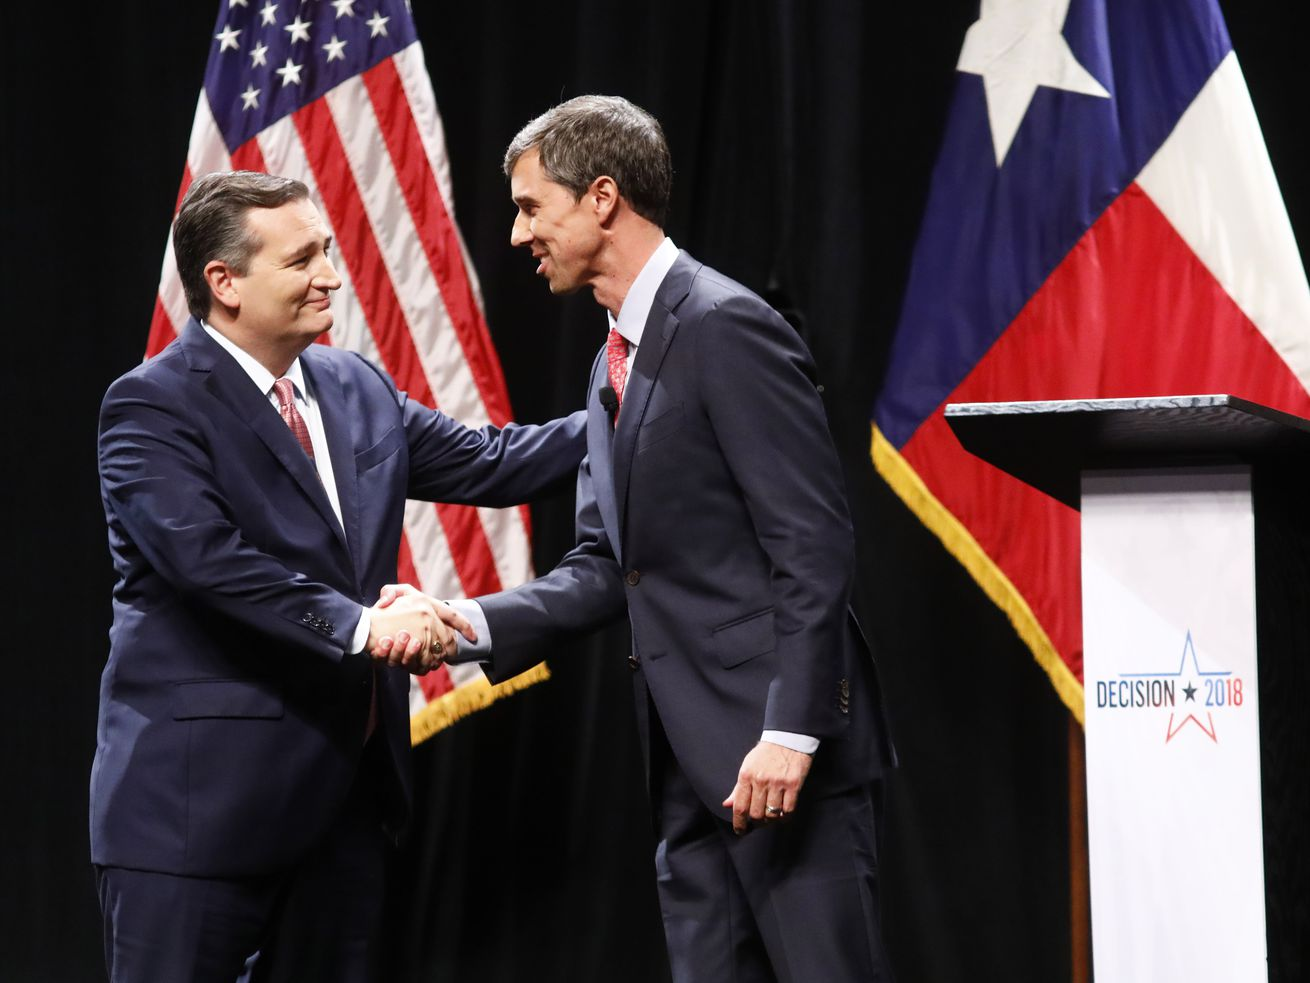 Ted Cruz and Beto O'Rourke shake hands after a debate for Texas's US Senate seat in September 2018.